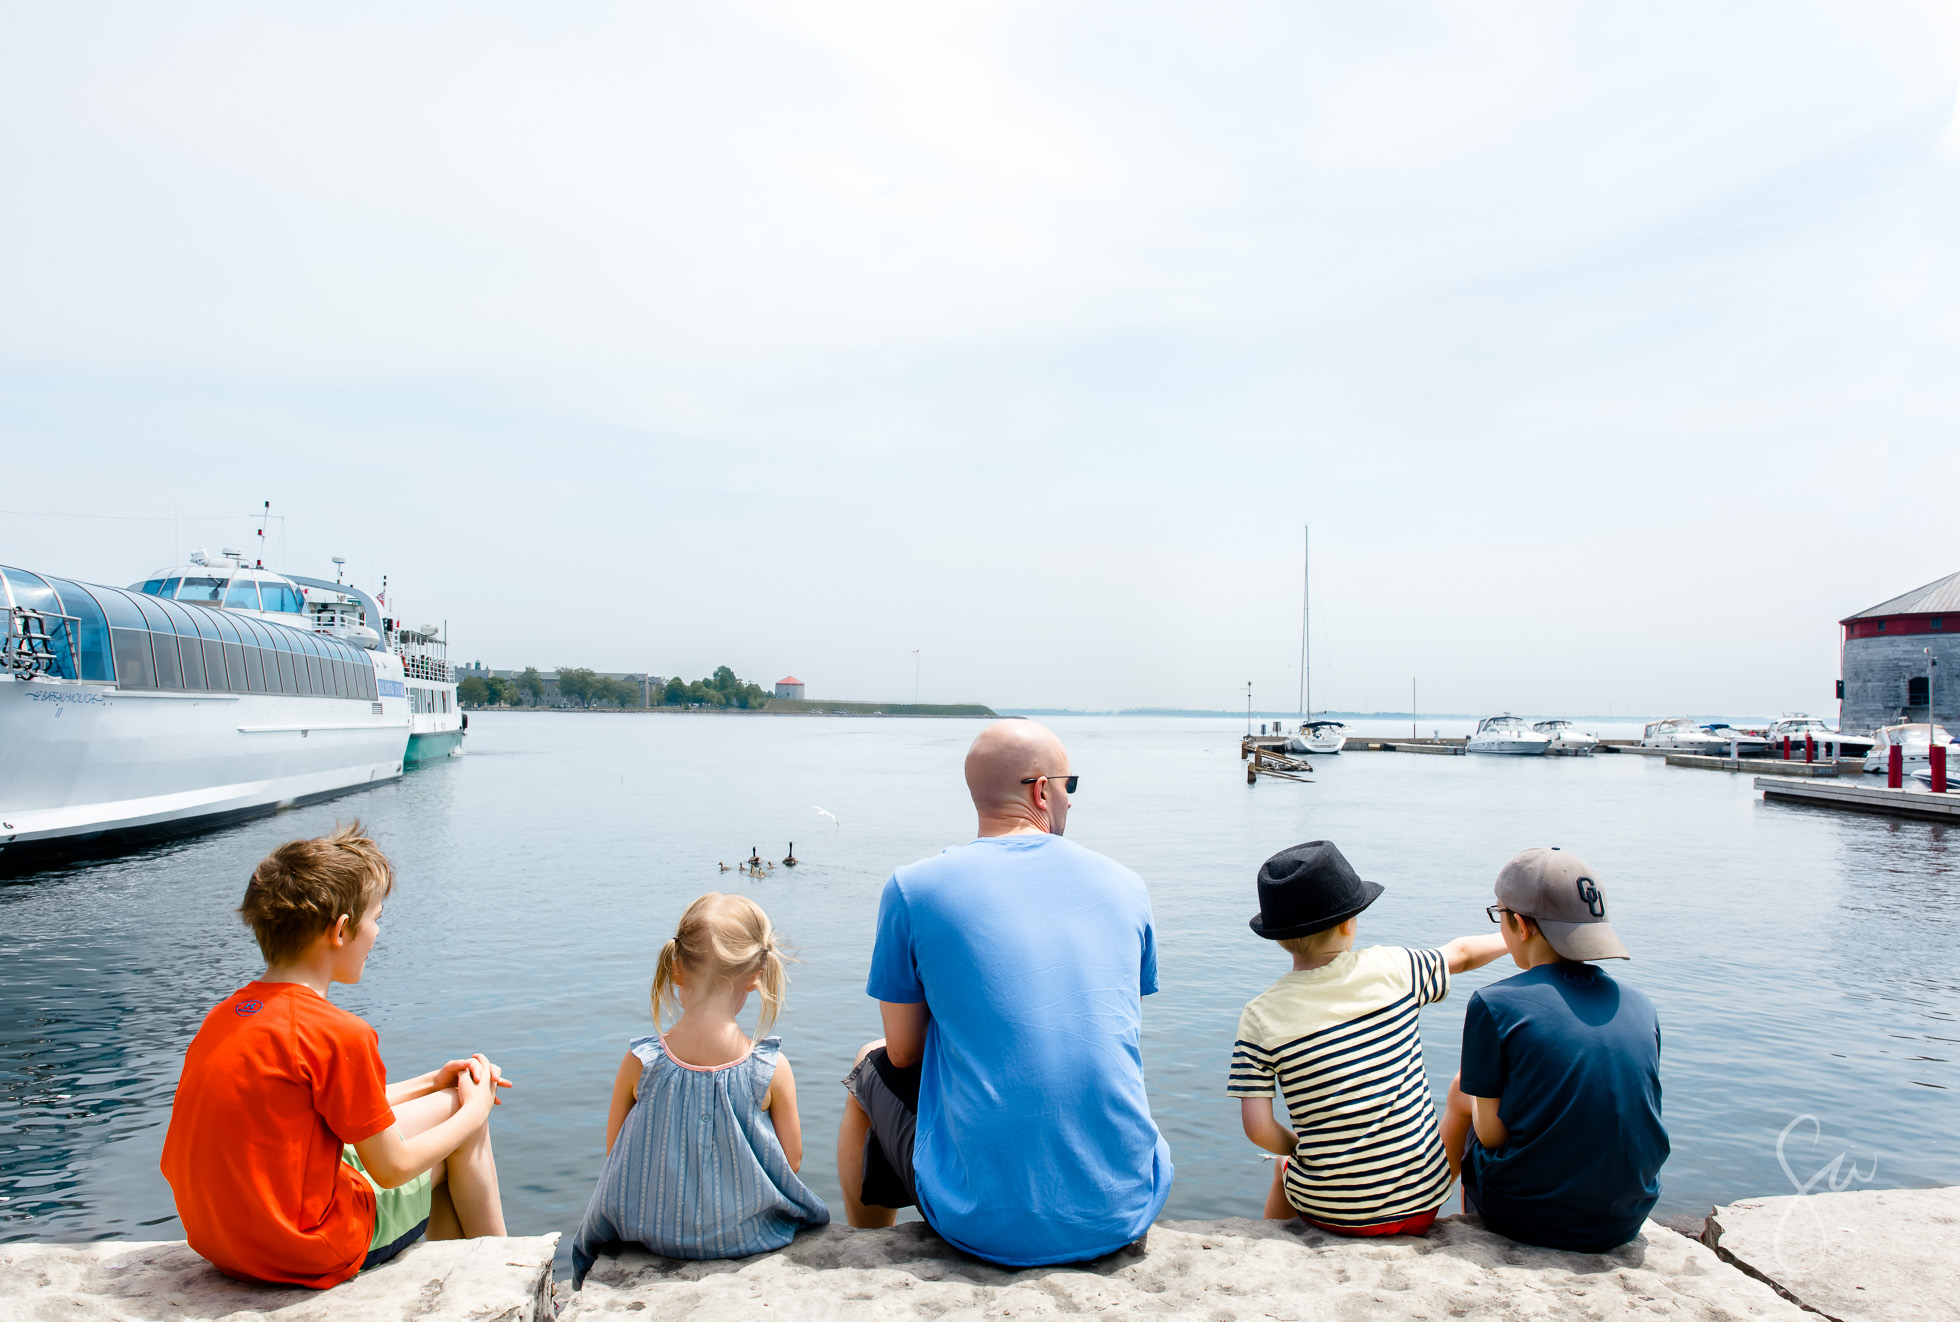 2016-Photo-Essay-Airy-Photos-of-Family-Daytrip-to-Beautiful-Waterfront-Downtown-of-Kingston-Ontario-Canada-(1 of 8)